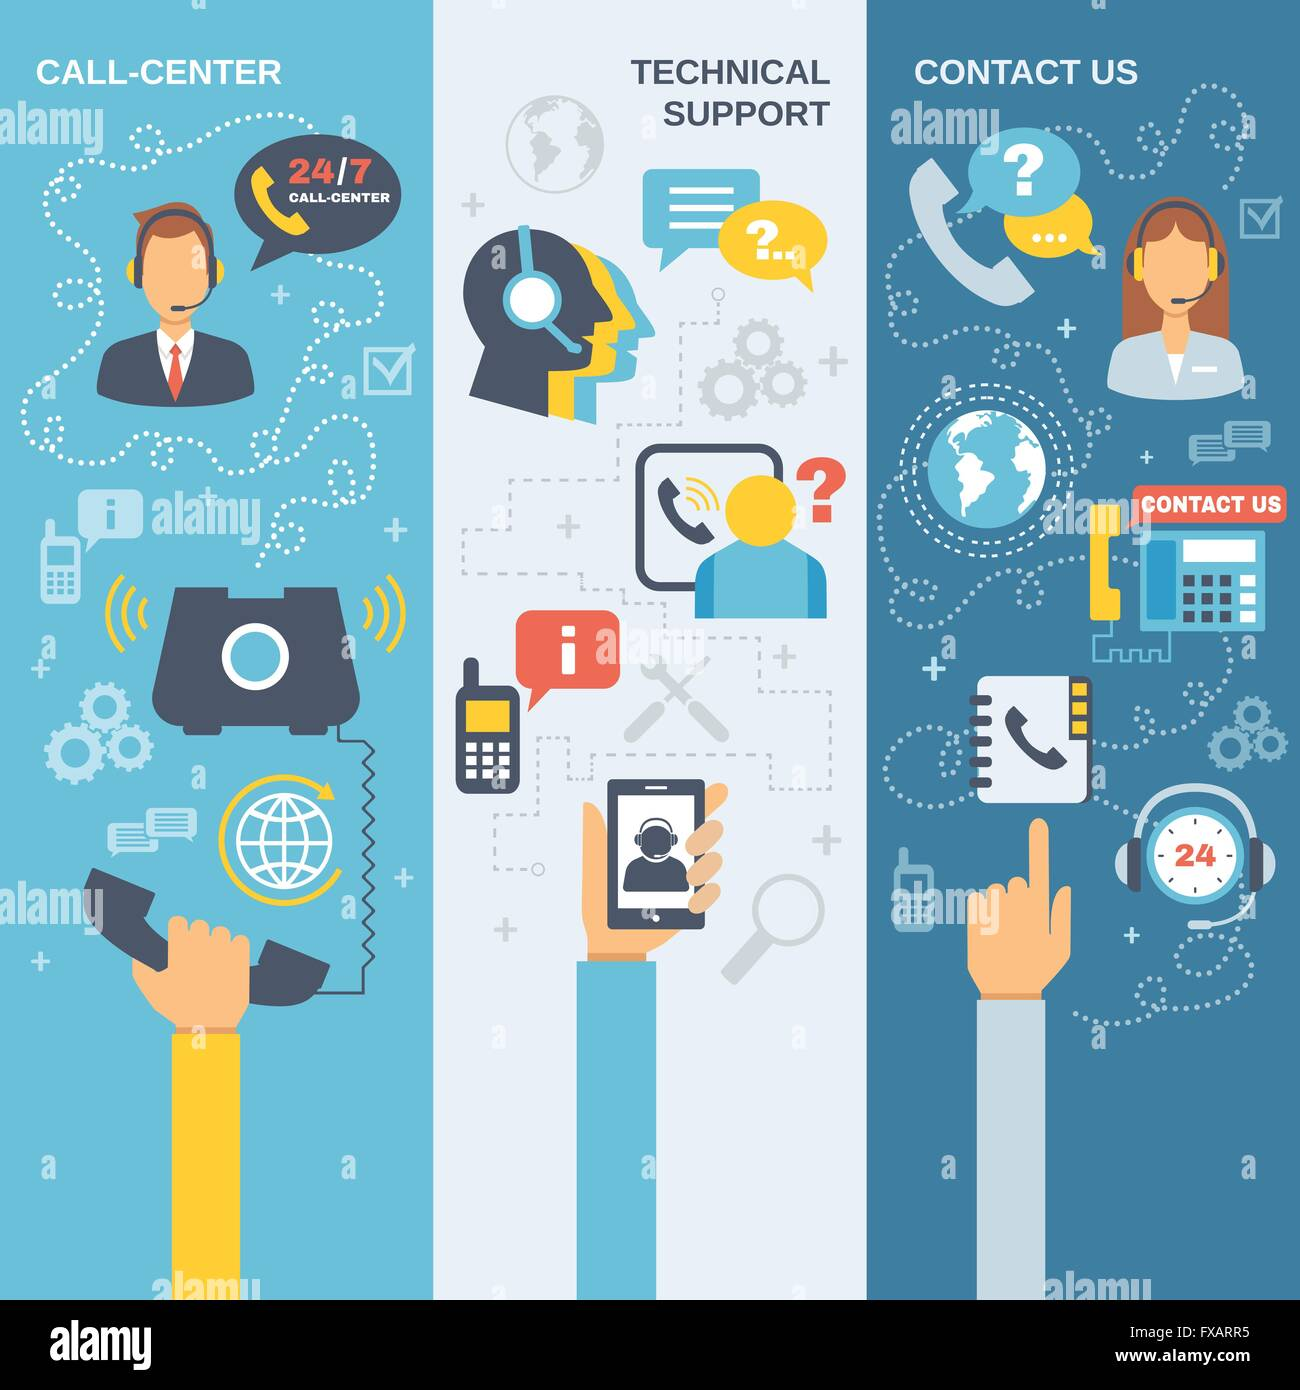 Support Call Center Banner - Stock Vector